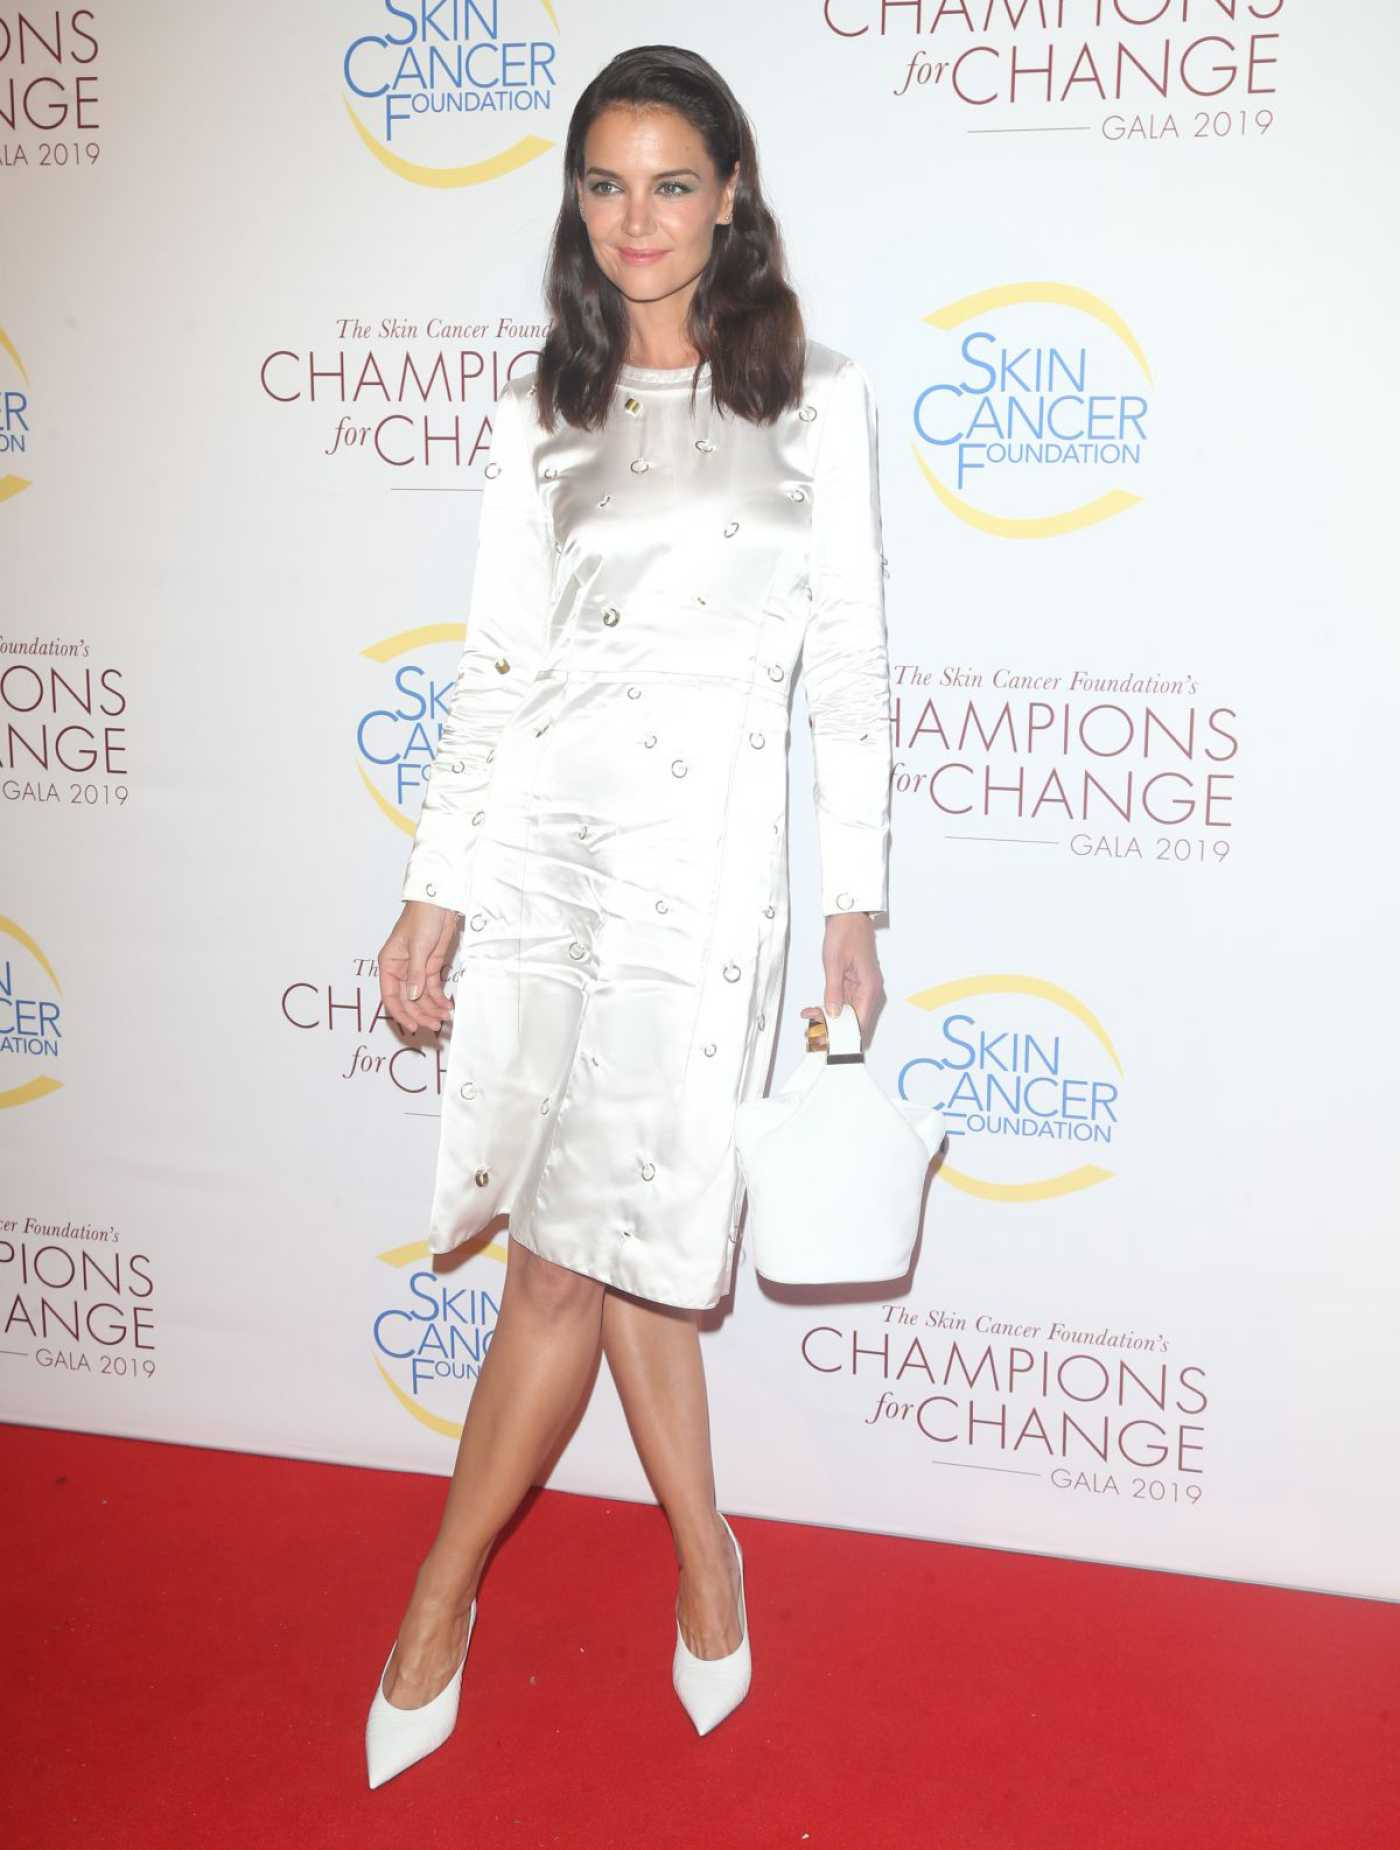 Katie Holmes Attends the Champions for Change Gala in New York 10/17/2019